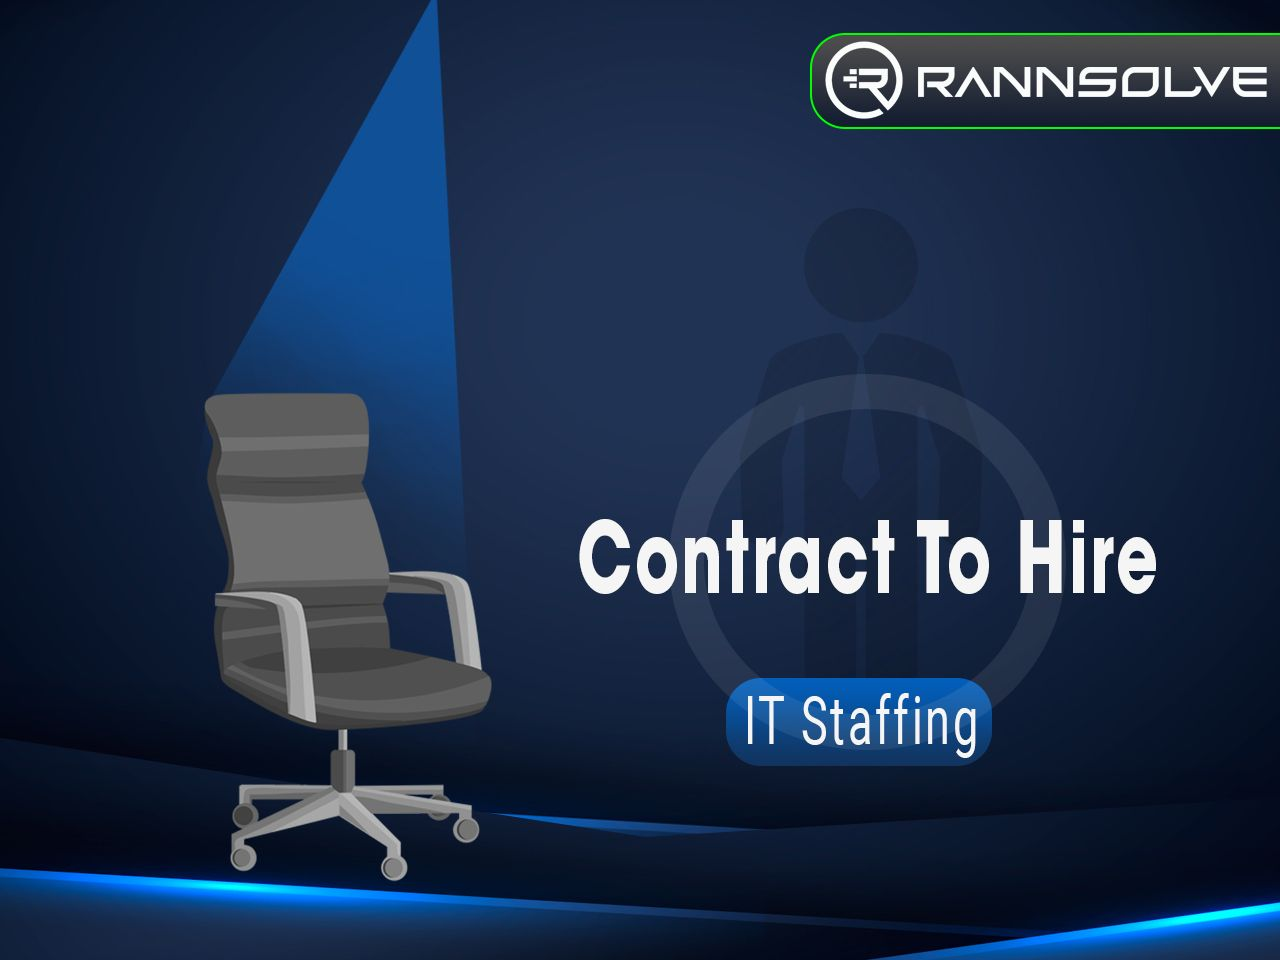 Rannsolve provides contract to hire and direct hire